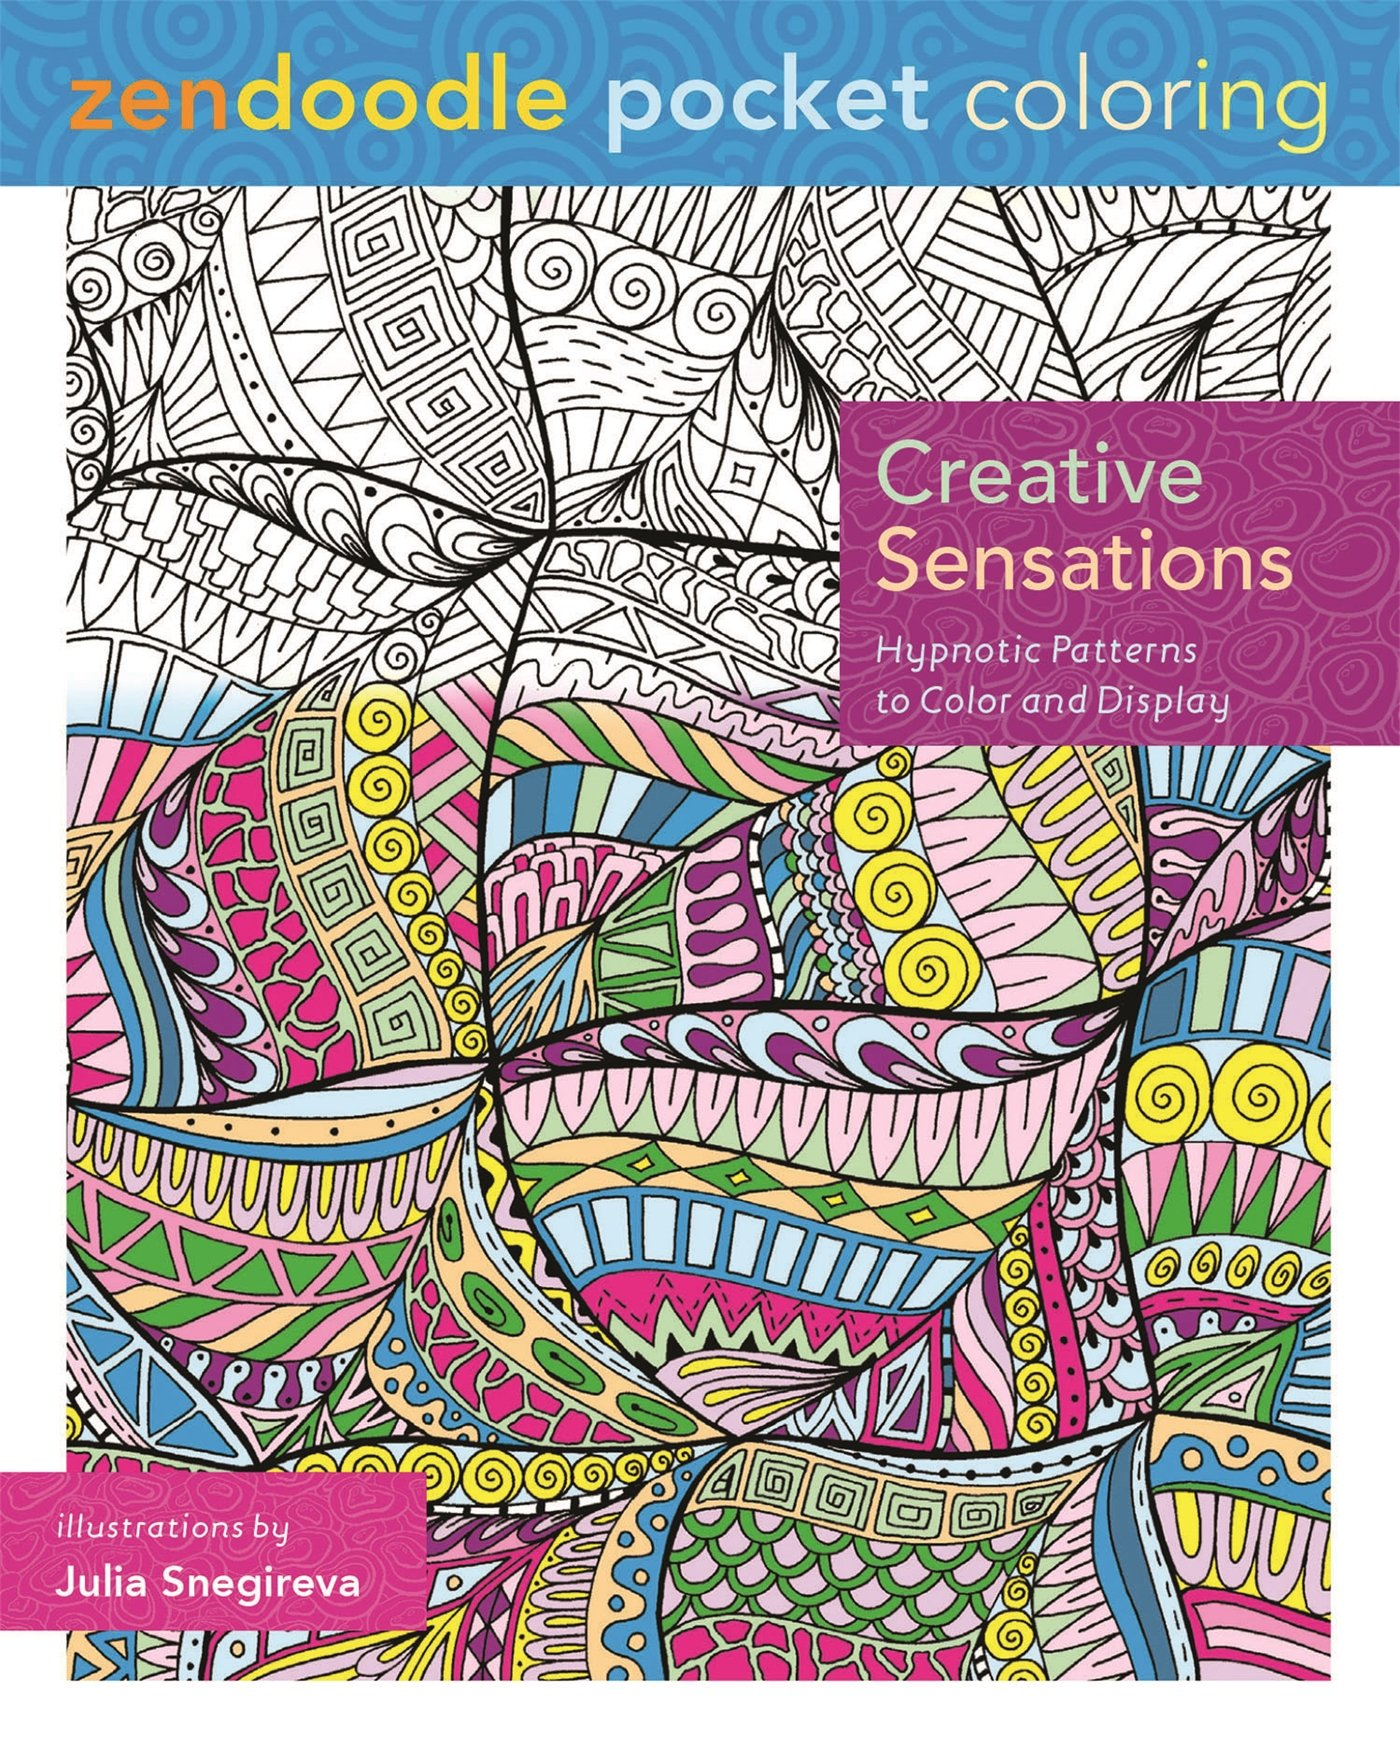 Zendoodle Pocket Coloring: Creative Sensations: Hypnotic Patterns to Color and Display